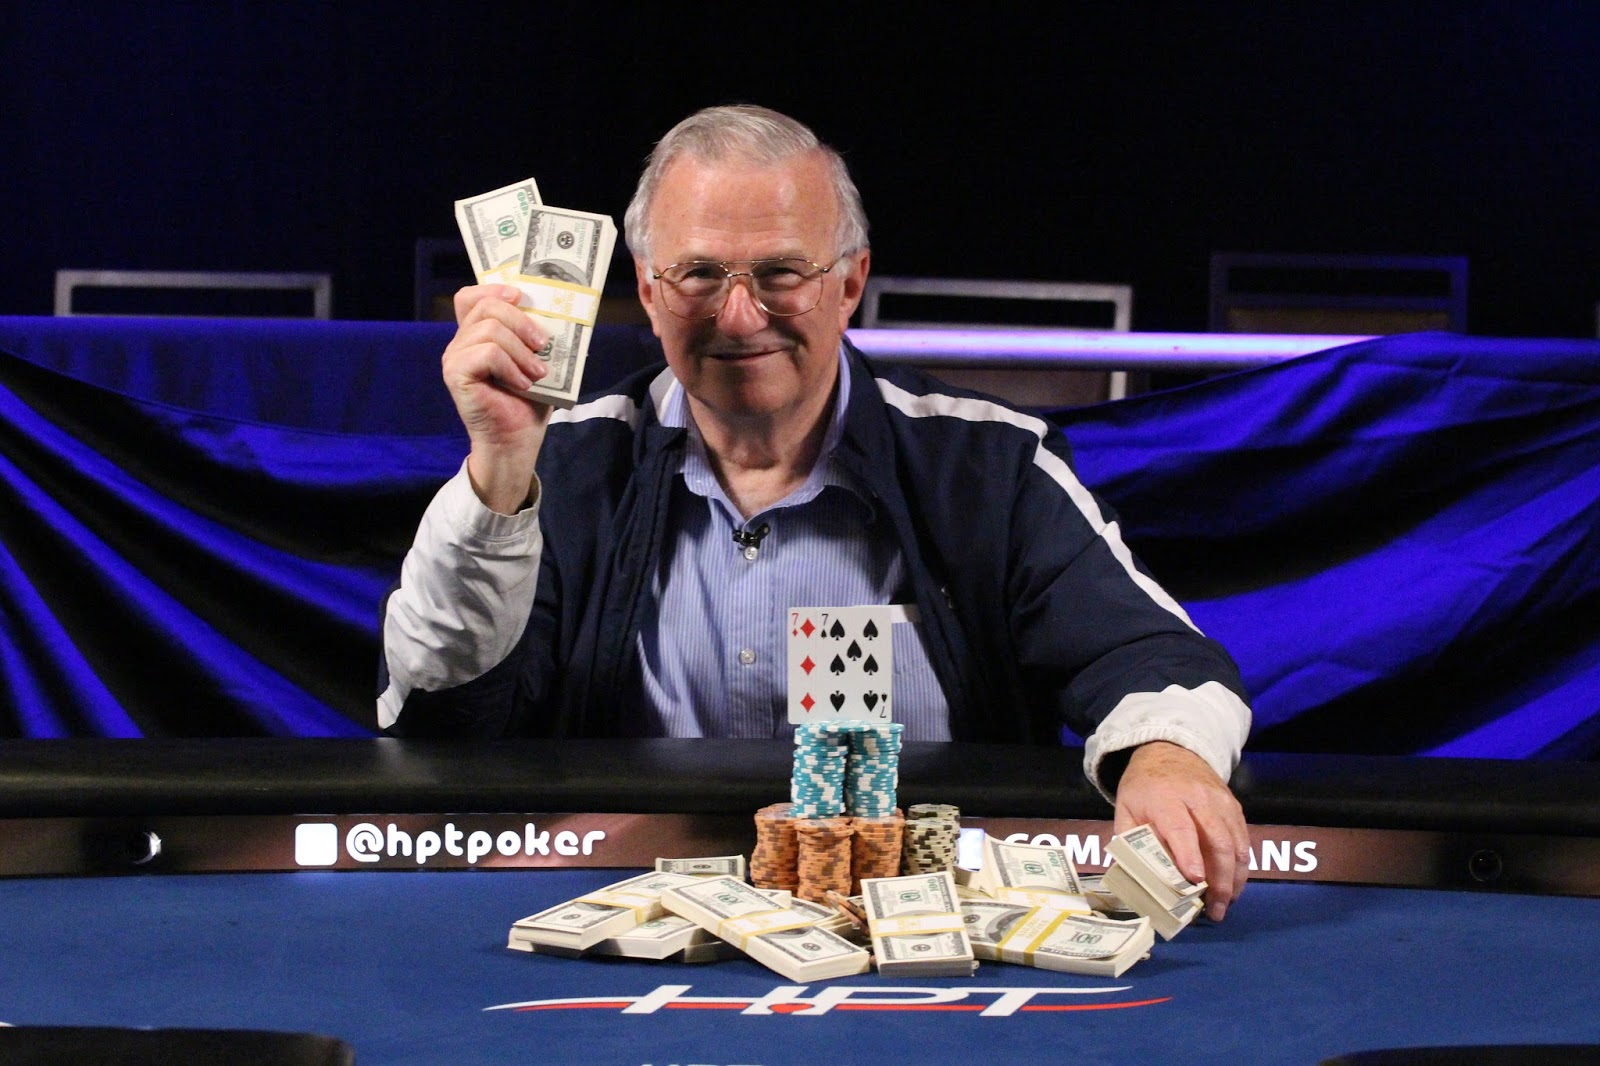 Tom Morse Turns Satellite Win Into 117k At Hpt St